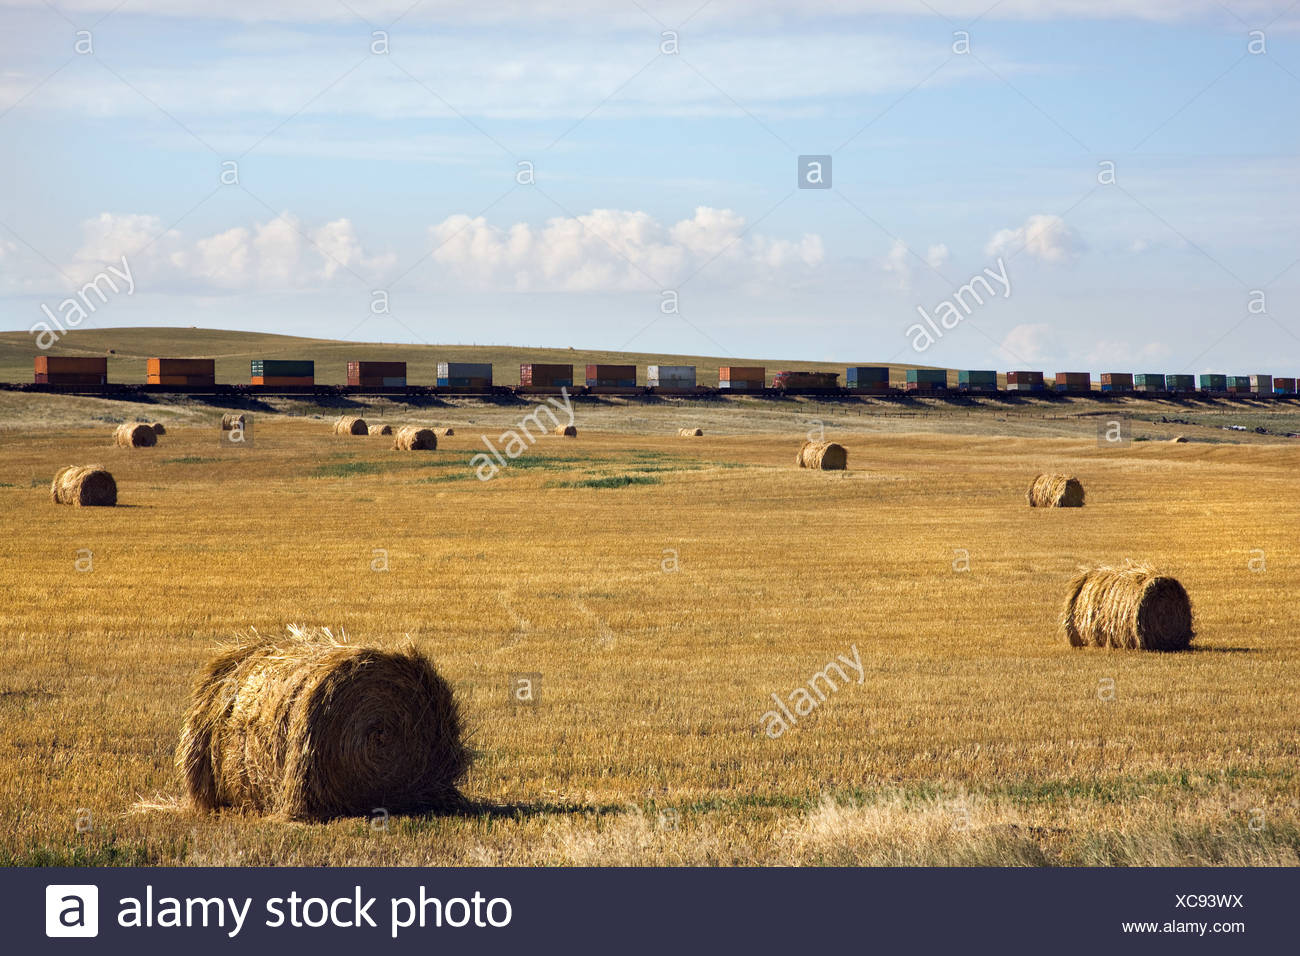 Bales of hay in field with freight train in distance - Stock Image